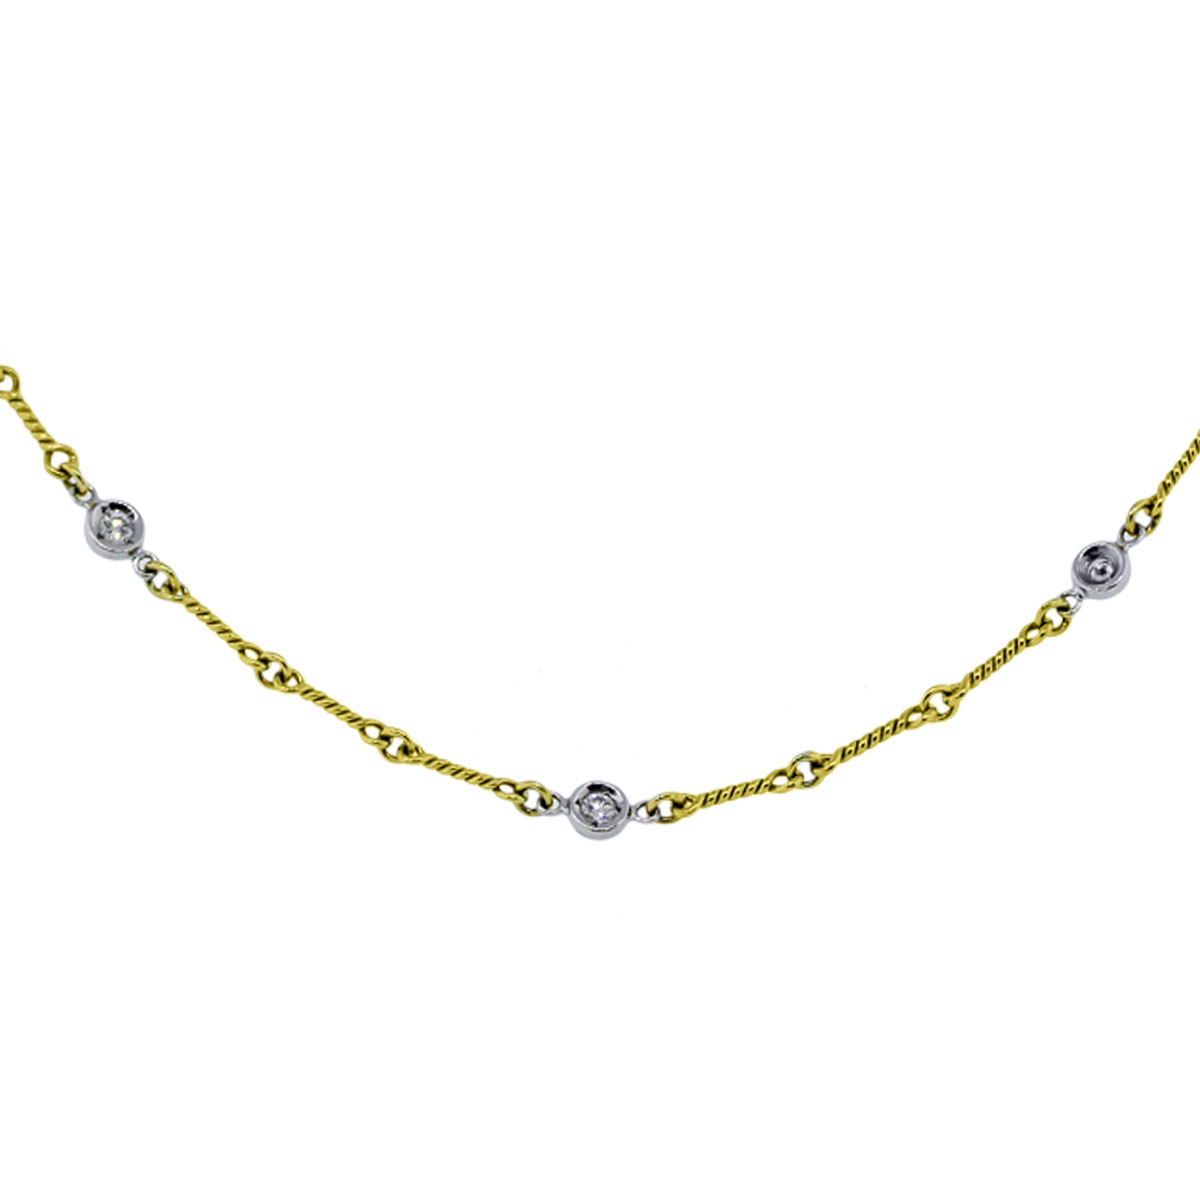 roberto coin jewelry 18k Yellow Gold Diamond by The Yard Necklace